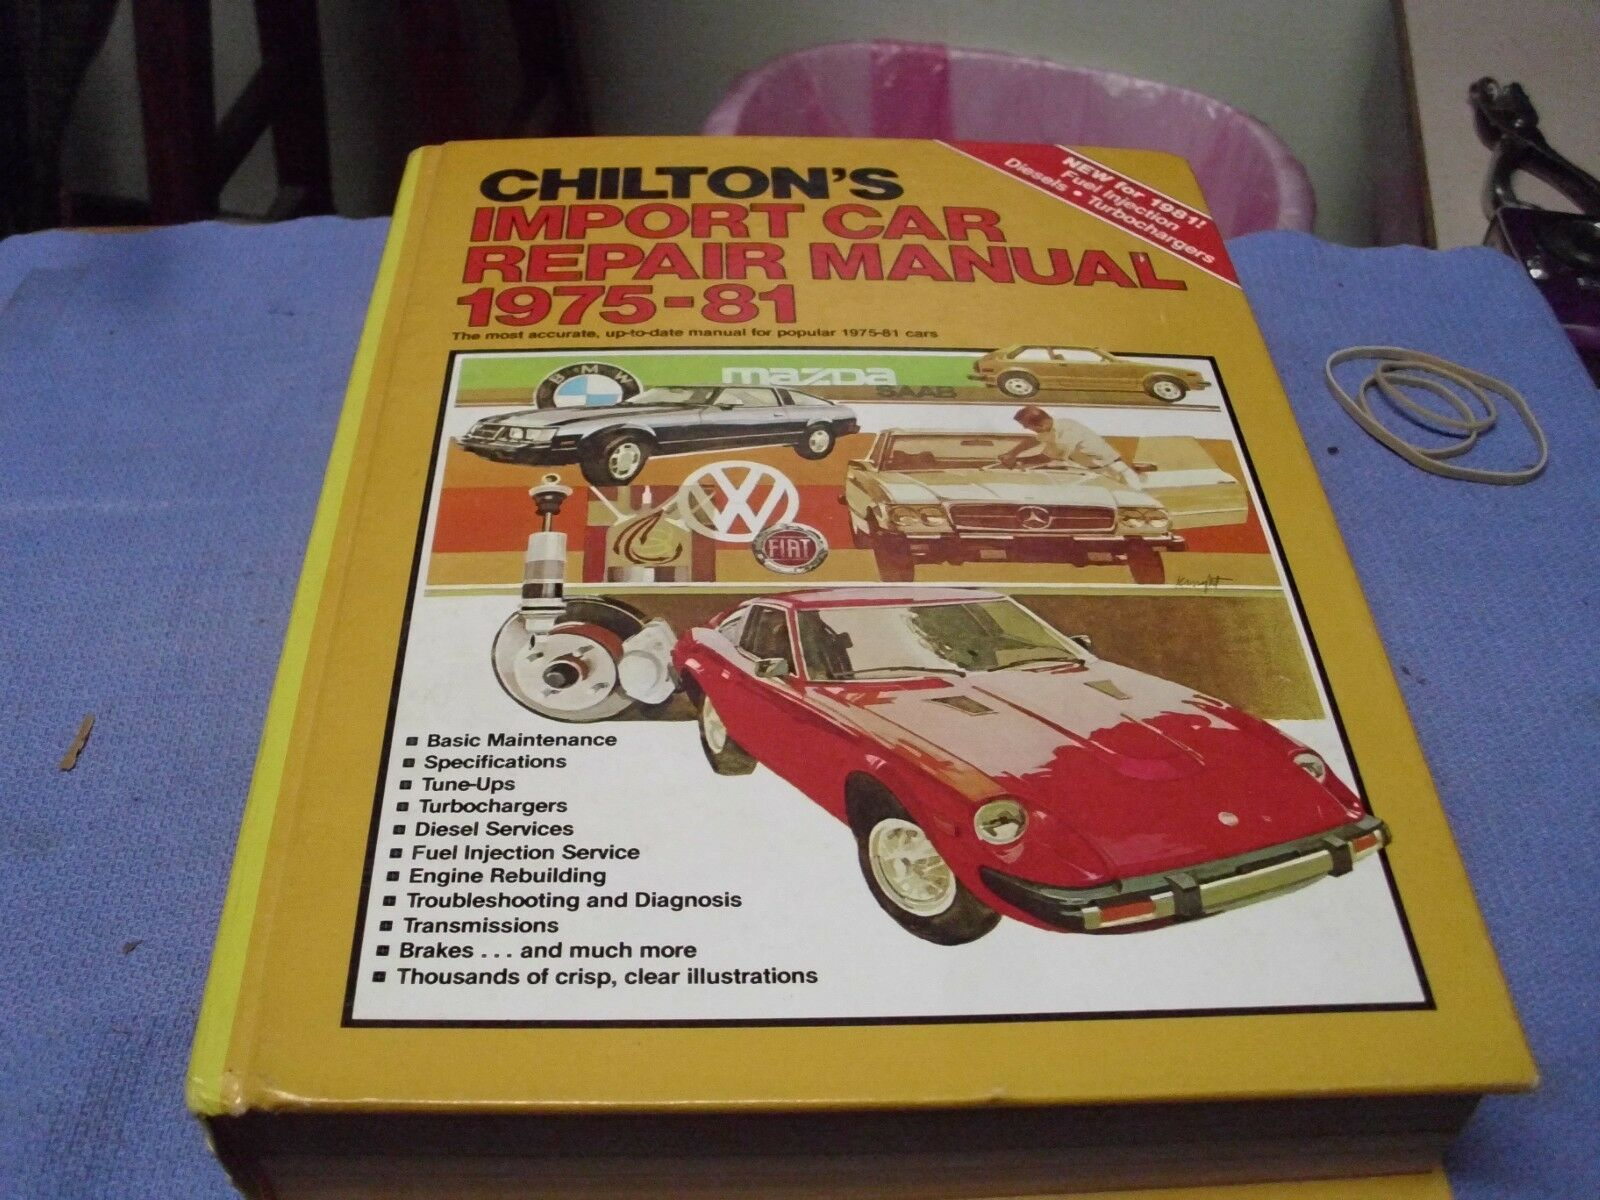 vintage chilton s import car repair manual 1975 81 6th ed rh picclick com Alex Chilton Eve Chilton